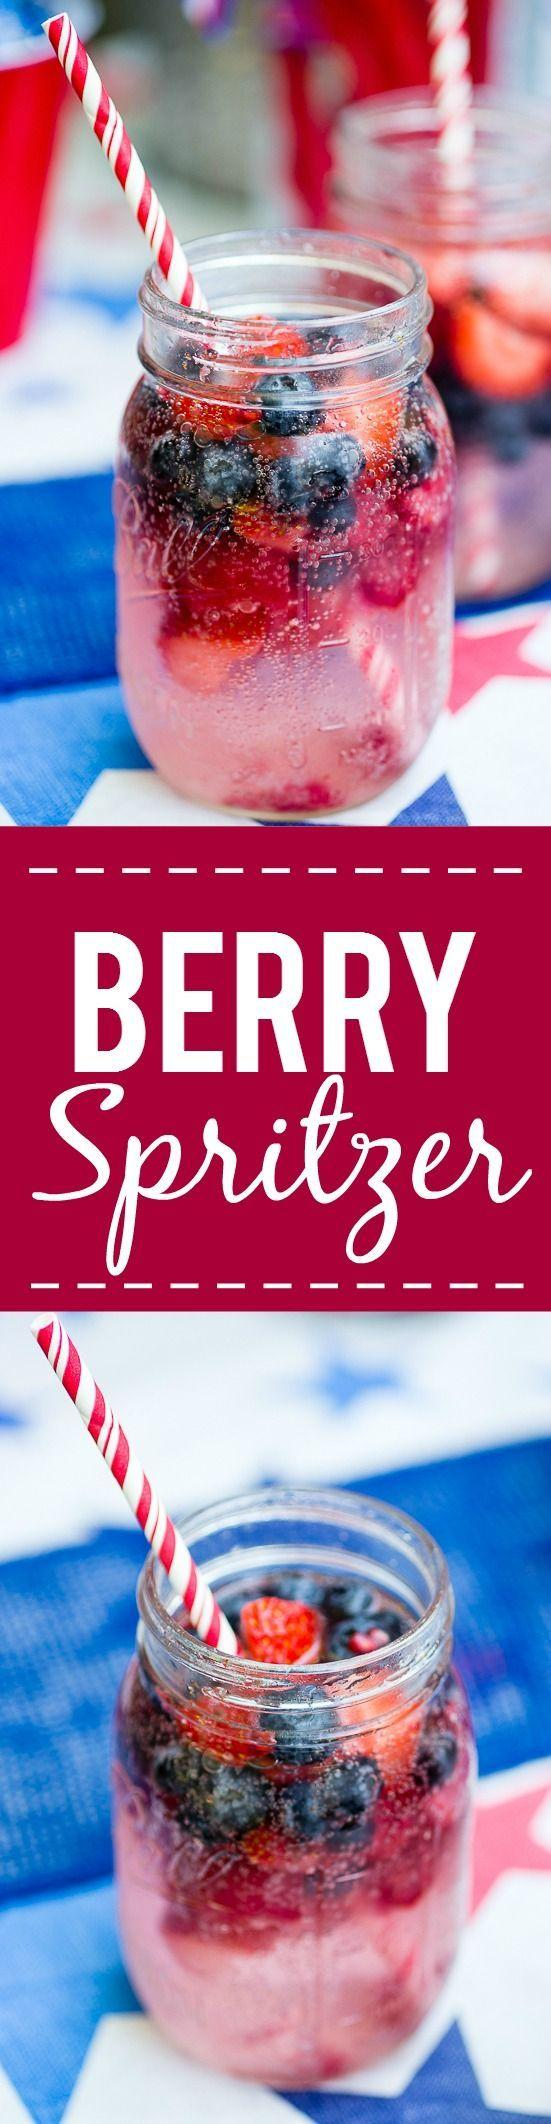 Hochzeit - Patriotic Berry Spritzer -Fresh And Full Of Sweet Berries, This Berry Spritzer Is A Pretty And Refreshing Beverage That's Patriotic Too! Perfect F…